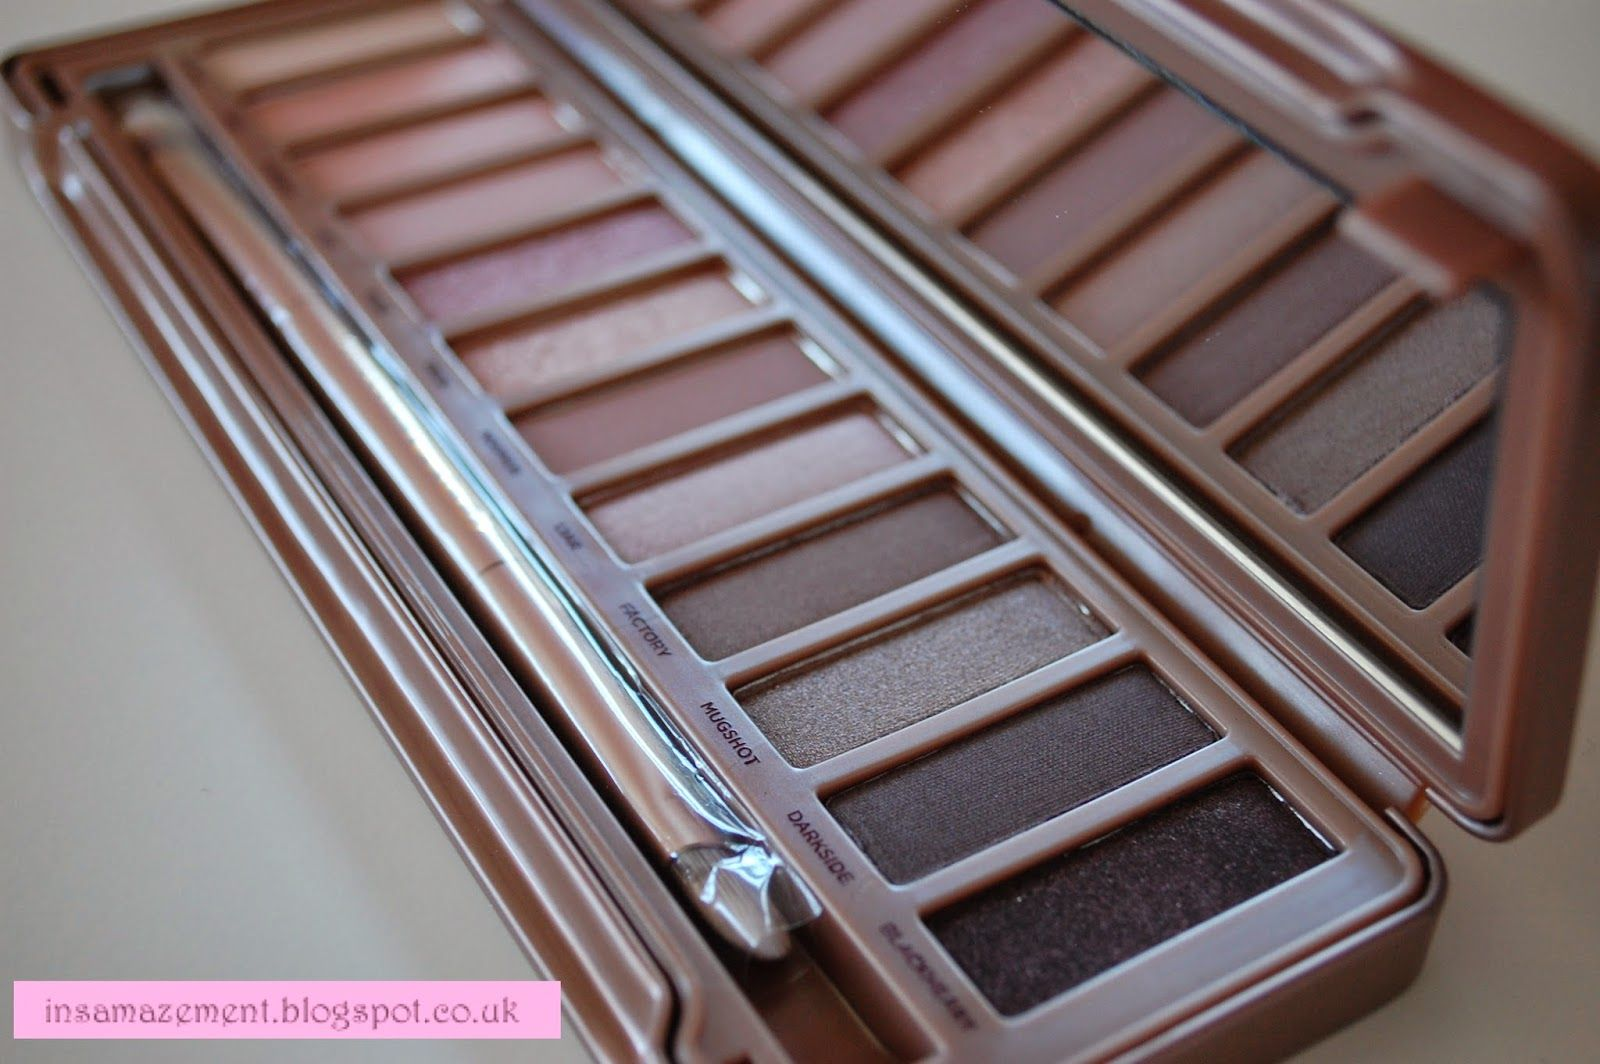 Urban-Decay-Naked-3-Palette-Review-5 - Beauty Trends and